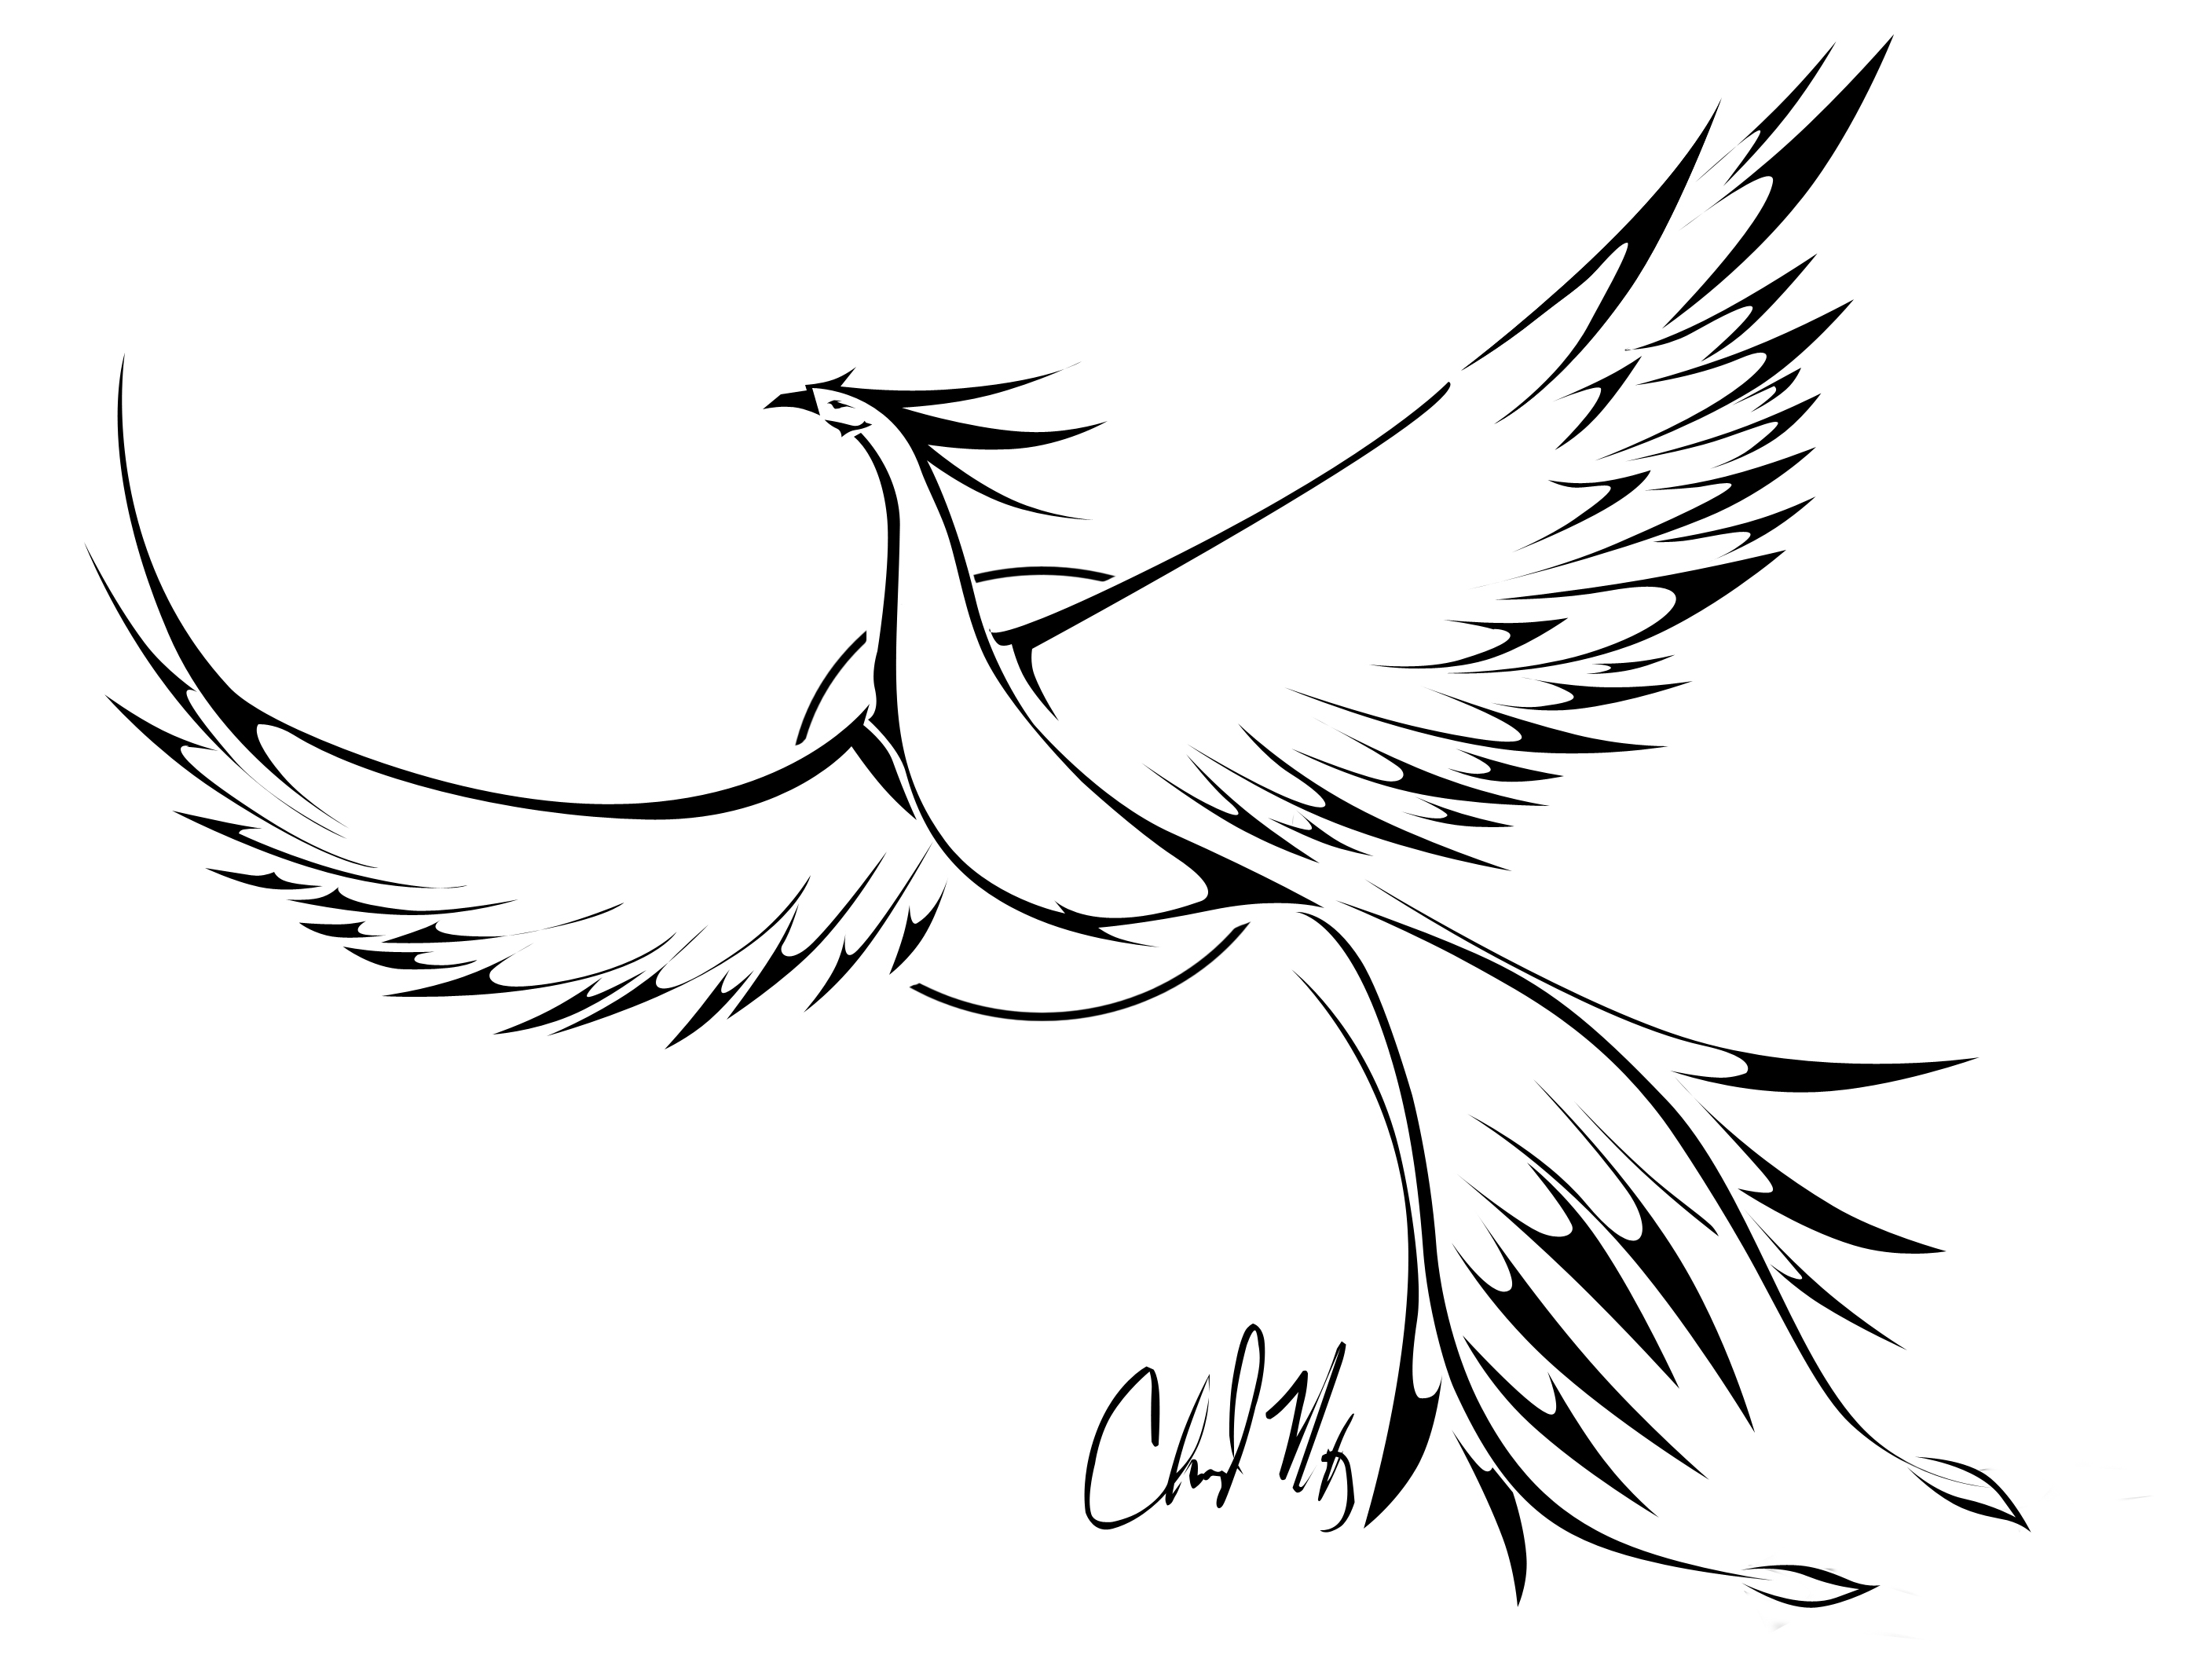 Drawing Lines Meaning : Bird tattoos designs ideas and meaning for you